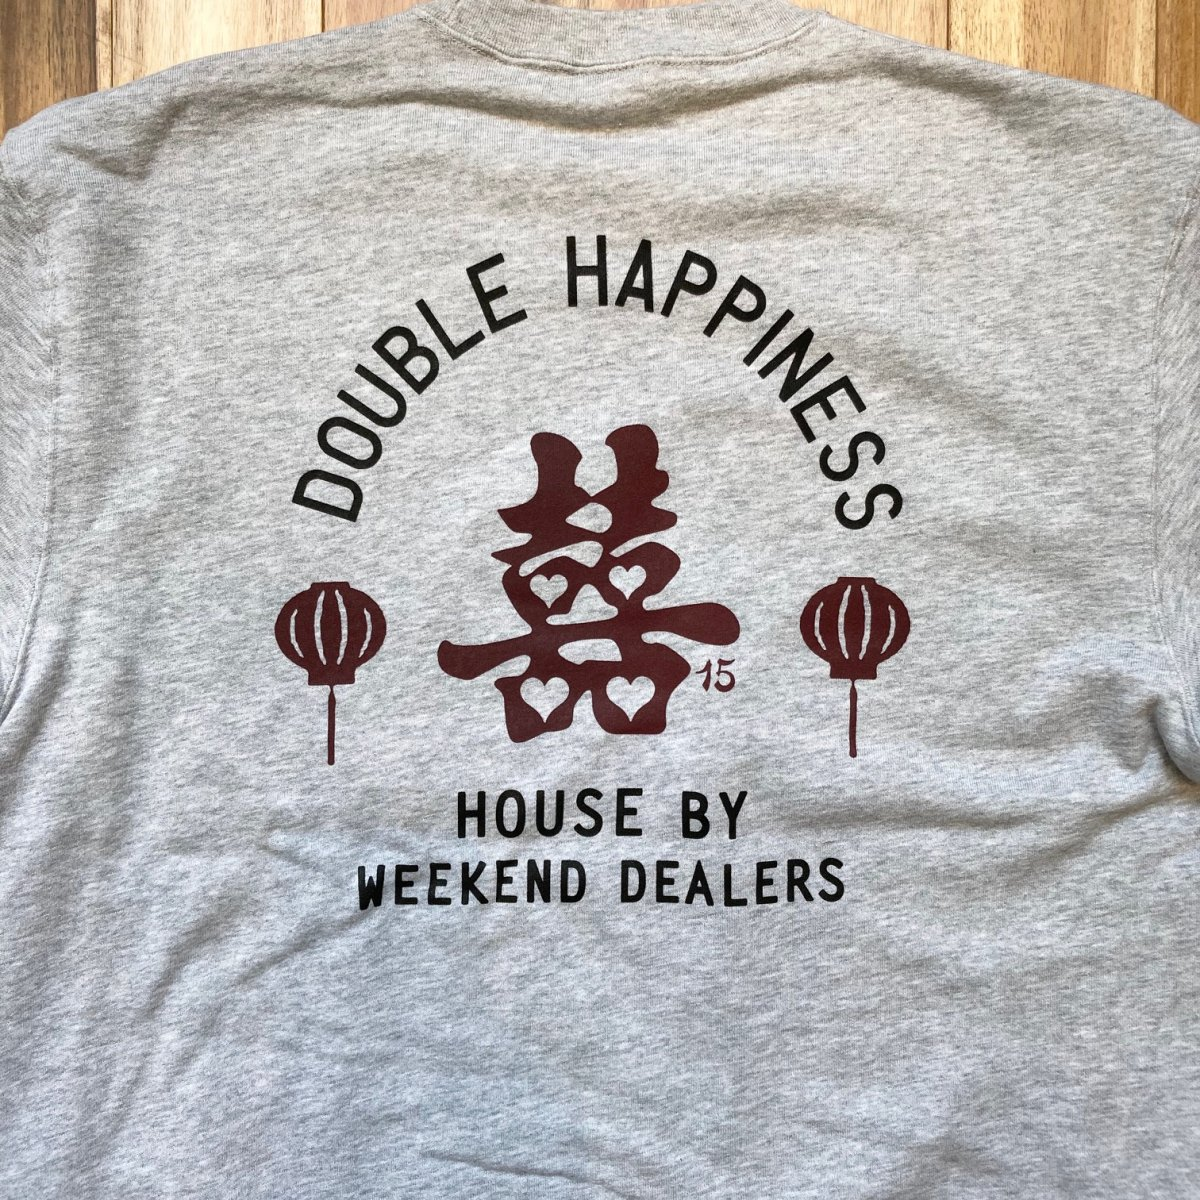 <img class='new_mark_img1' src='https://img.shop-pro.jp/img/new/icons3.gif' style='border:none;display:inline;margin:0px;padding:0px;width:auto;' />Black Weirdos × HOUSE by WEEKEND DEALERS 15th ANNIVERSARYCREW NECK SWEAT 【GRAY】